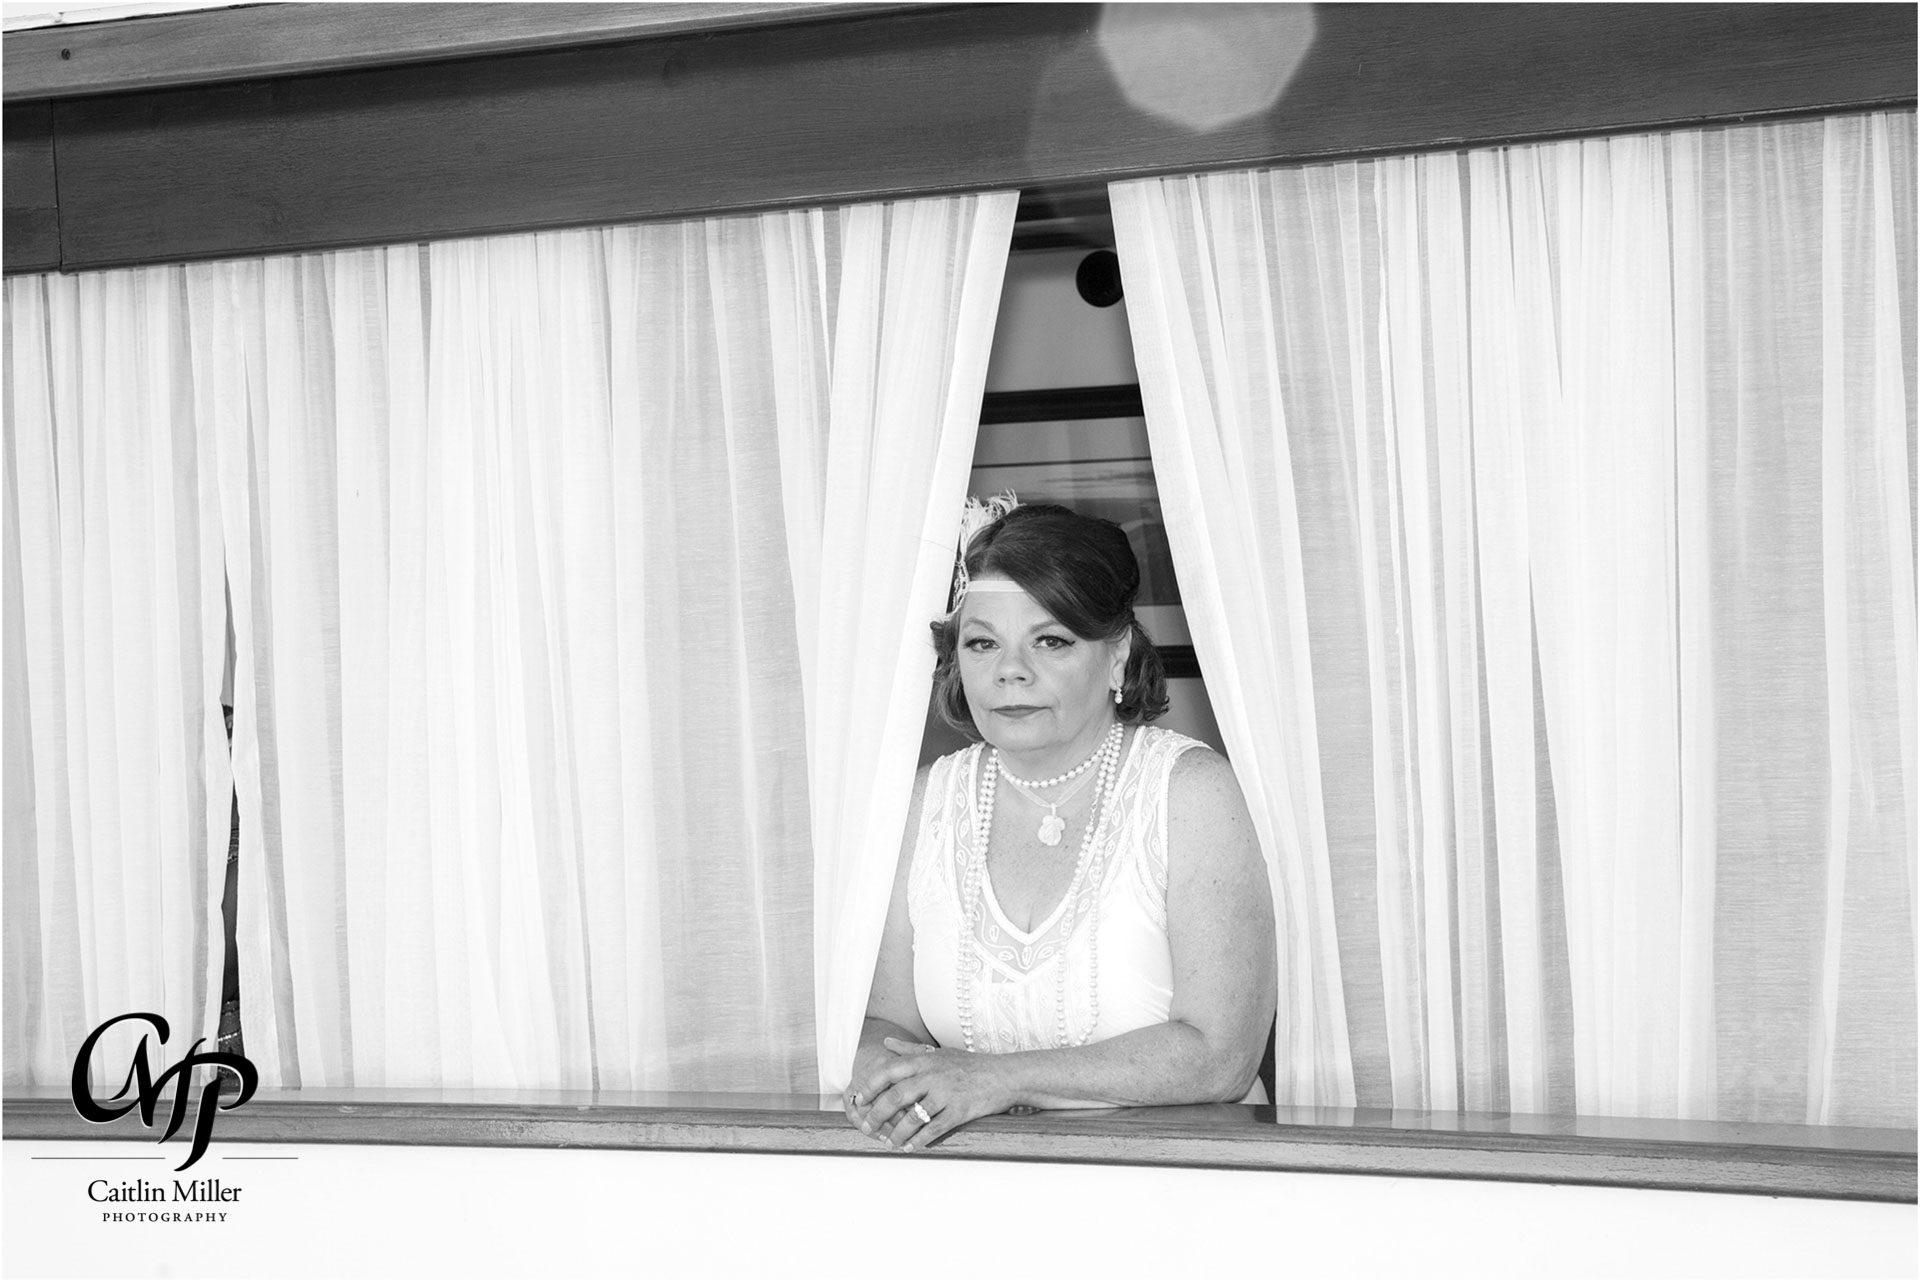 bombard-11.jpg from Jan and Robert's vow renewal on shoreline Cruise's Adirondac Boat on Lake George, NY by Saratoga Wedding Photographer Caitlin Miller Photography. Lake George Wedding Photographer. Stamford wedding photographer. Albany wedding photographer. Shoreline Cruises Wedding Photographer. Saratoga Wedding Photographer